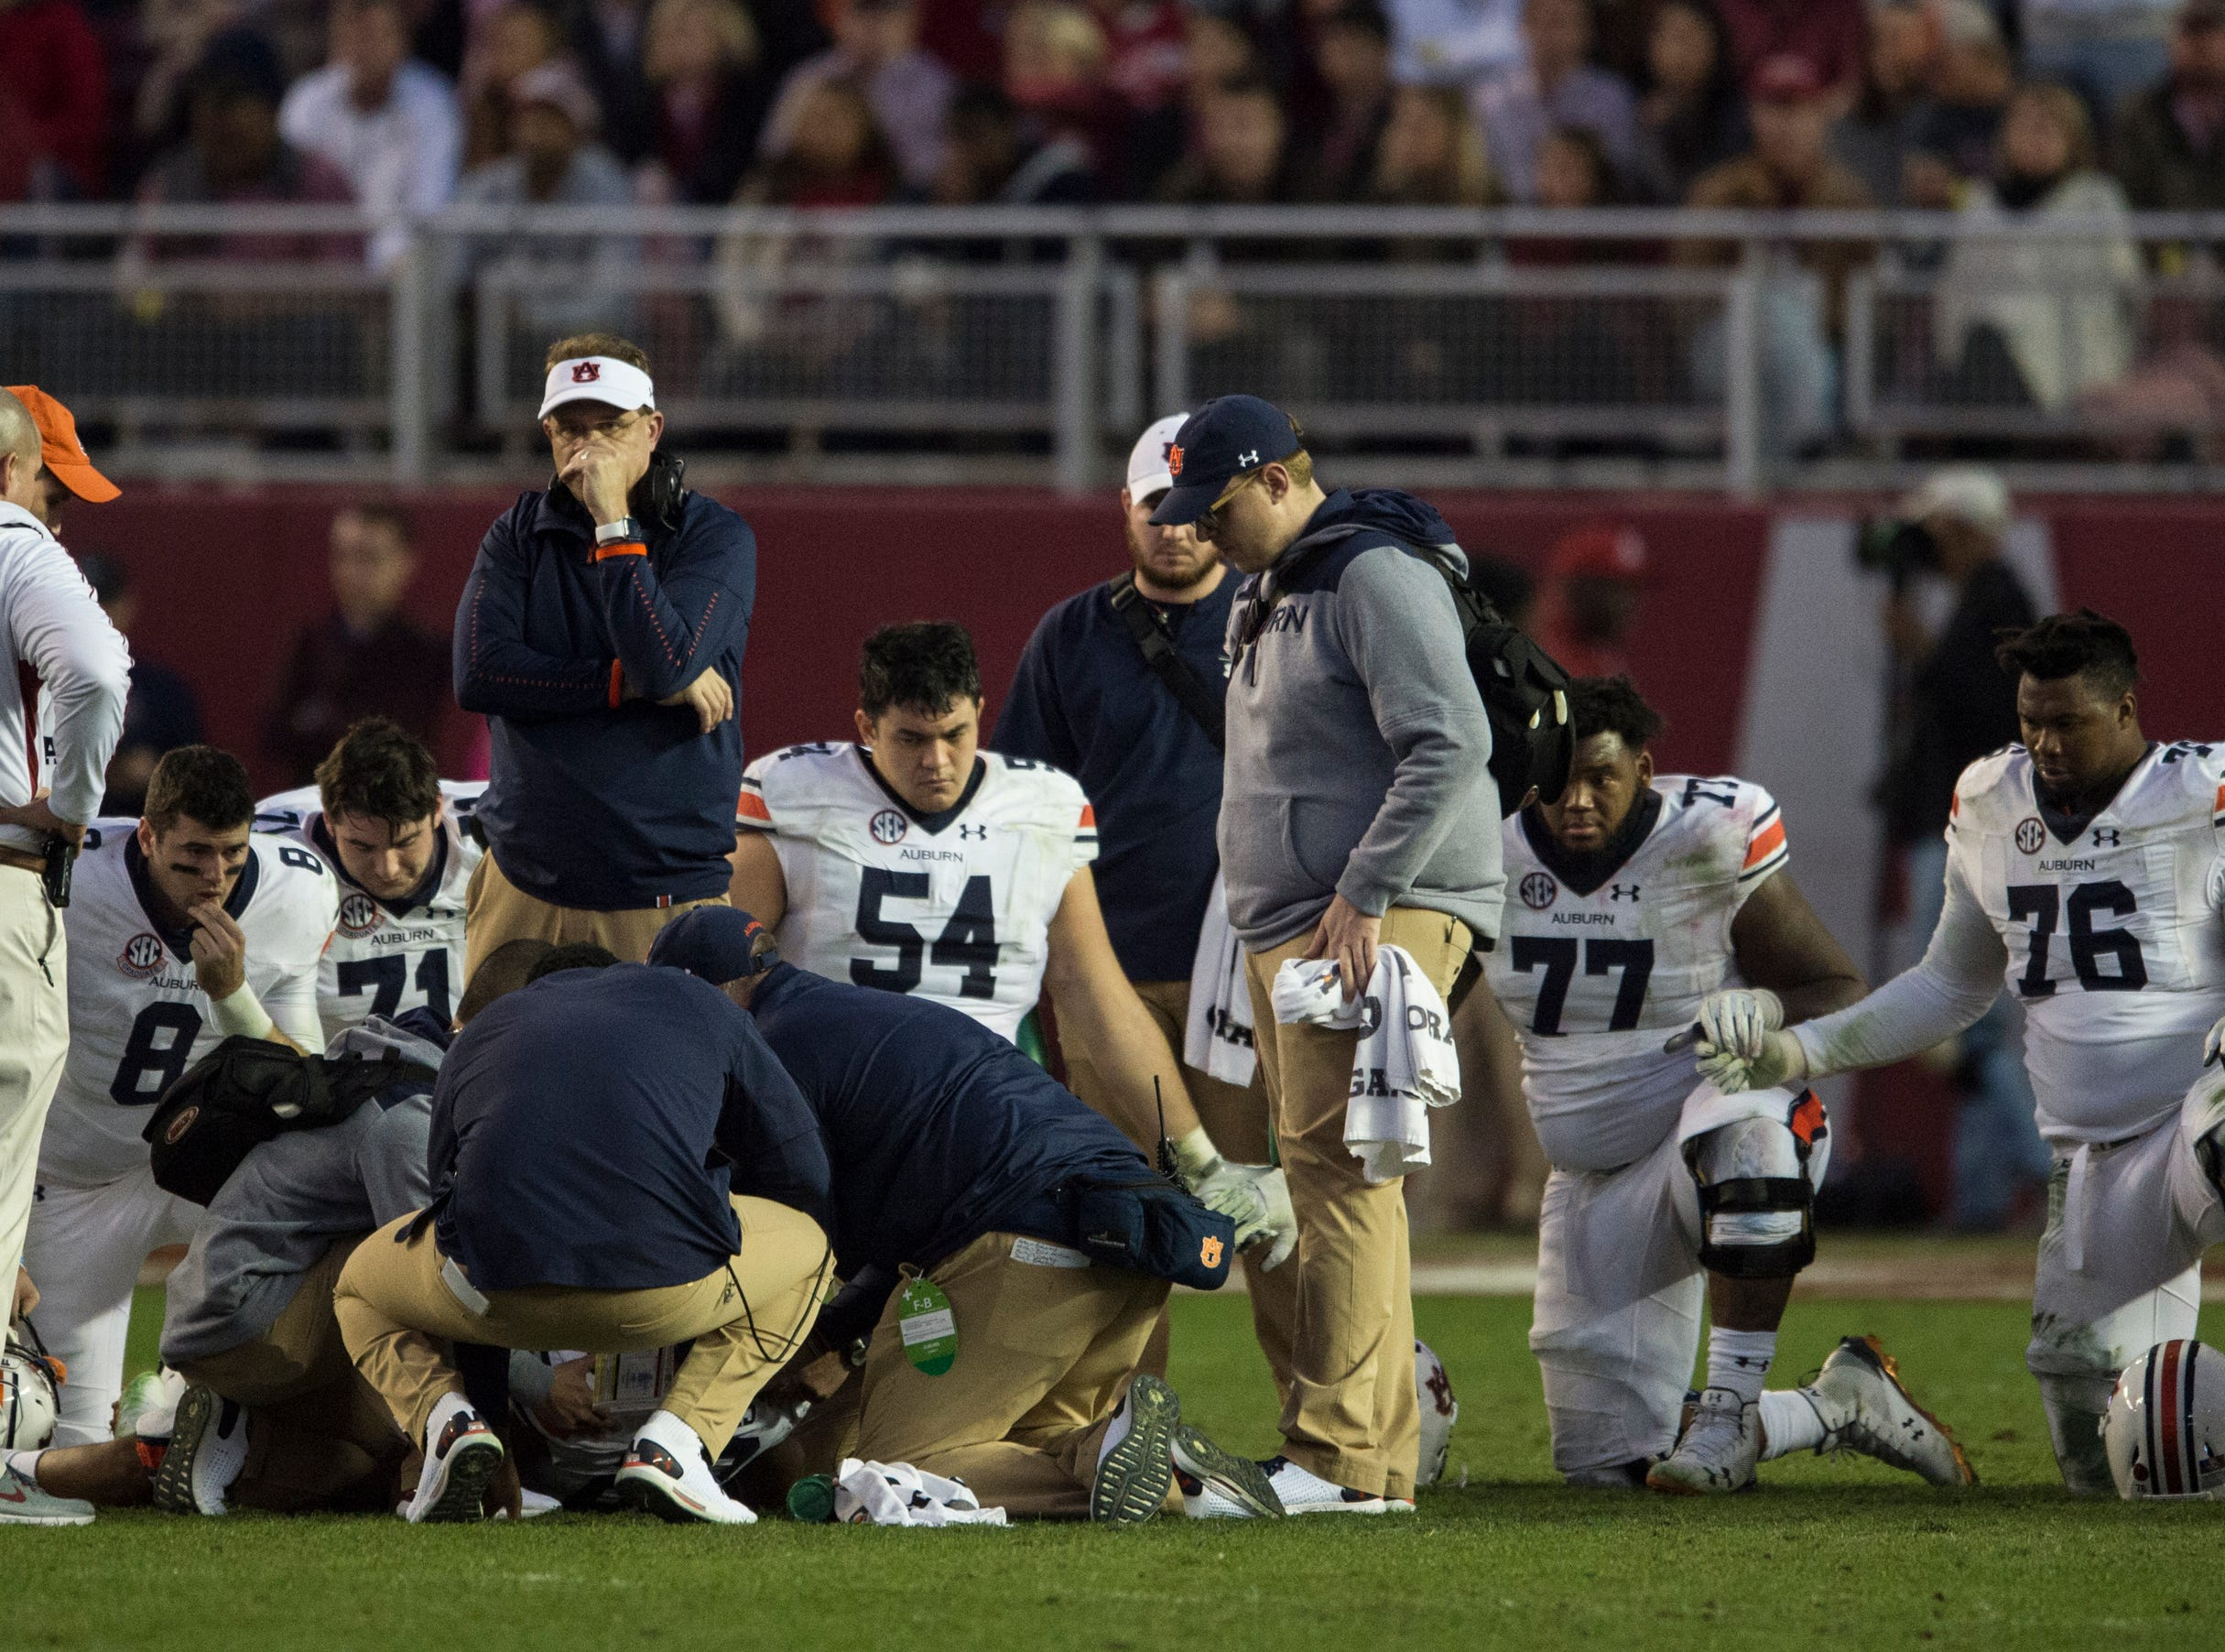 Auburn players and coaches surround Auburn wide receiver Ryan Davis (23) after he sustain an injury during the Iron Bowl at Bryant-Denny Stadium in Tuscaloosa, Ala., on Saturday, Nov. 24, 2018. Alabama defeated Auburn 52-21.